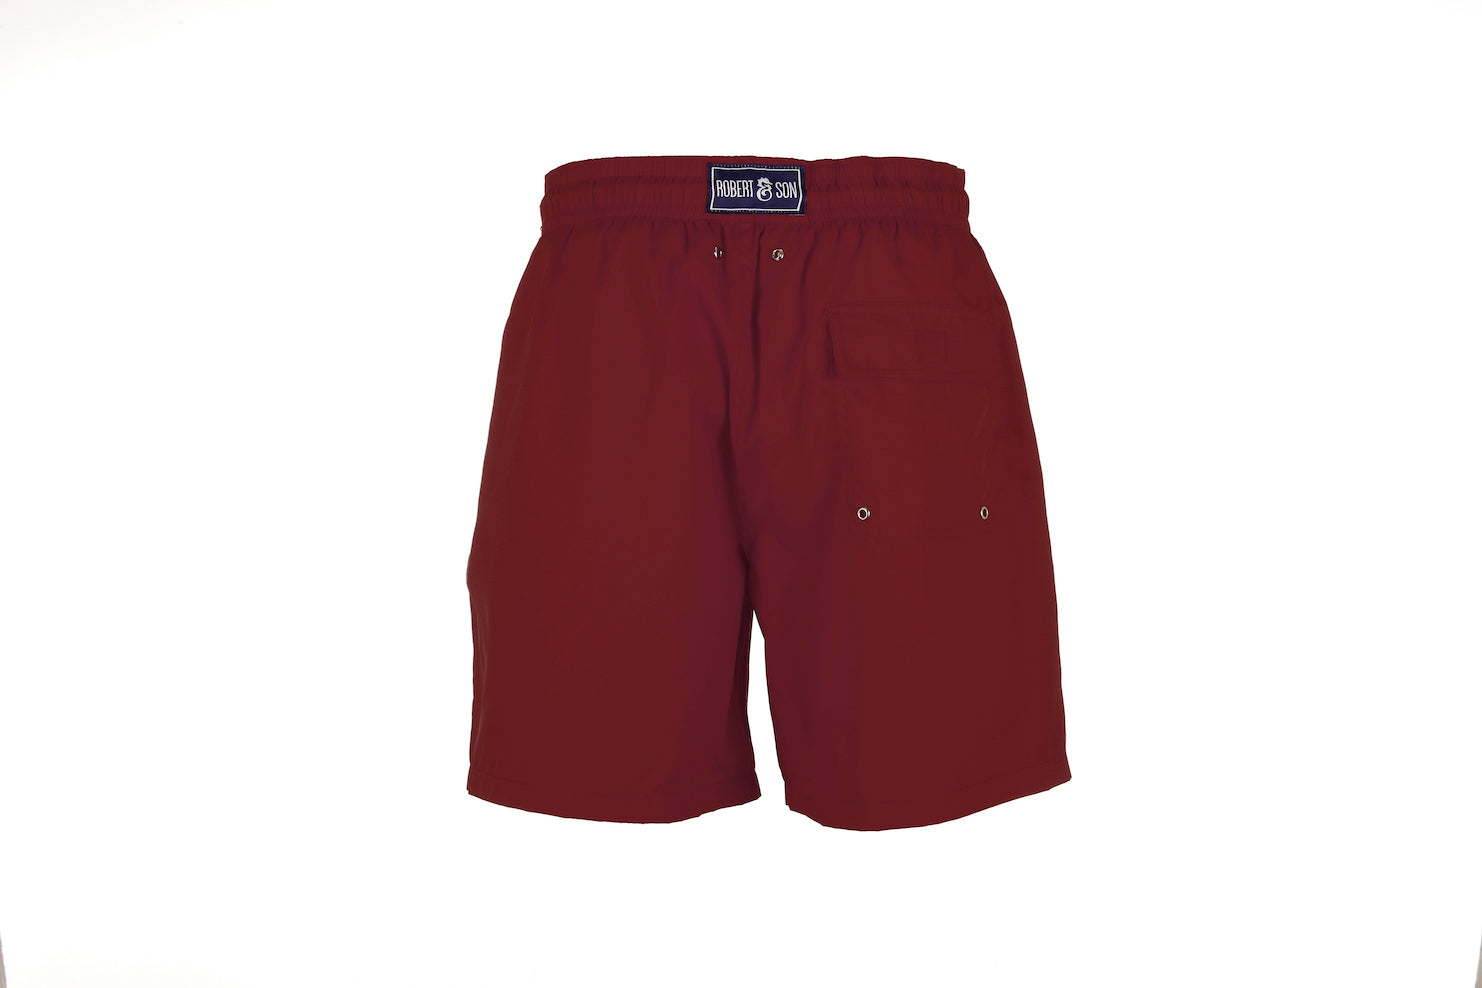 Boys Designer Swim Shorts, Burgundy Plain